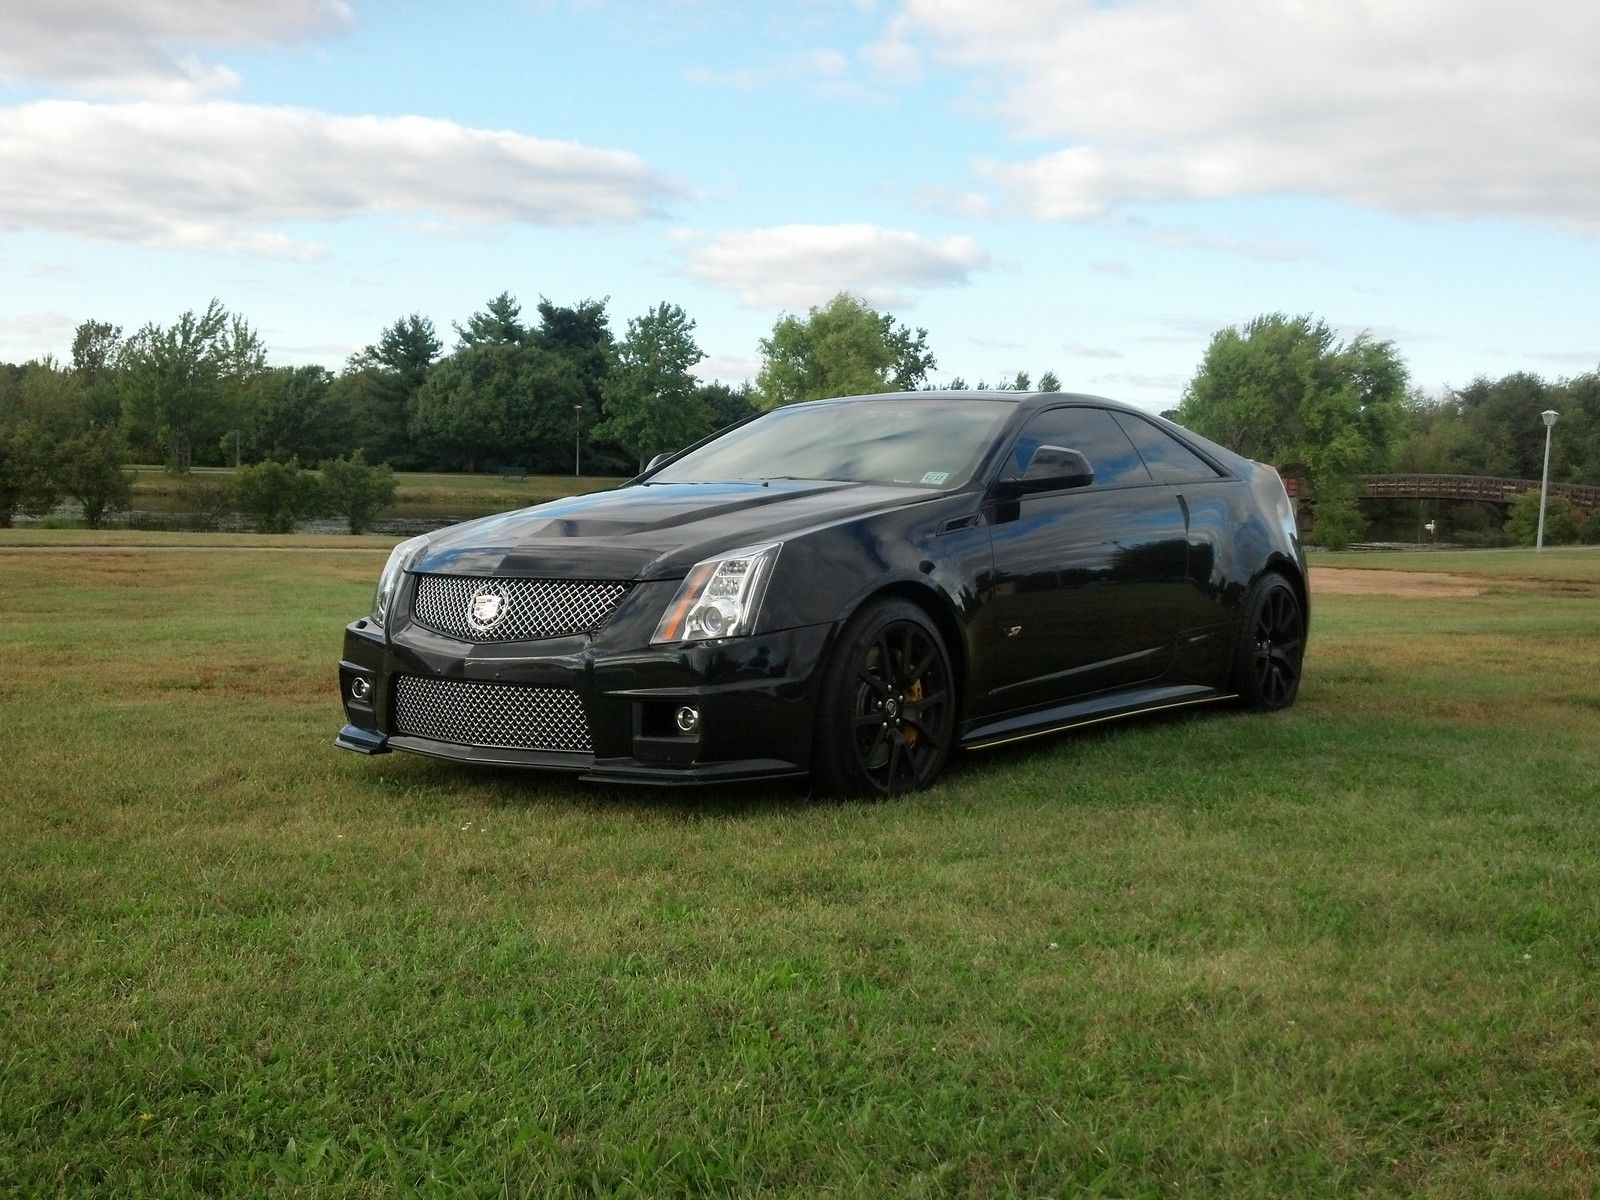 2012 black diamond cadillac cts v coupe picture mods upgrades